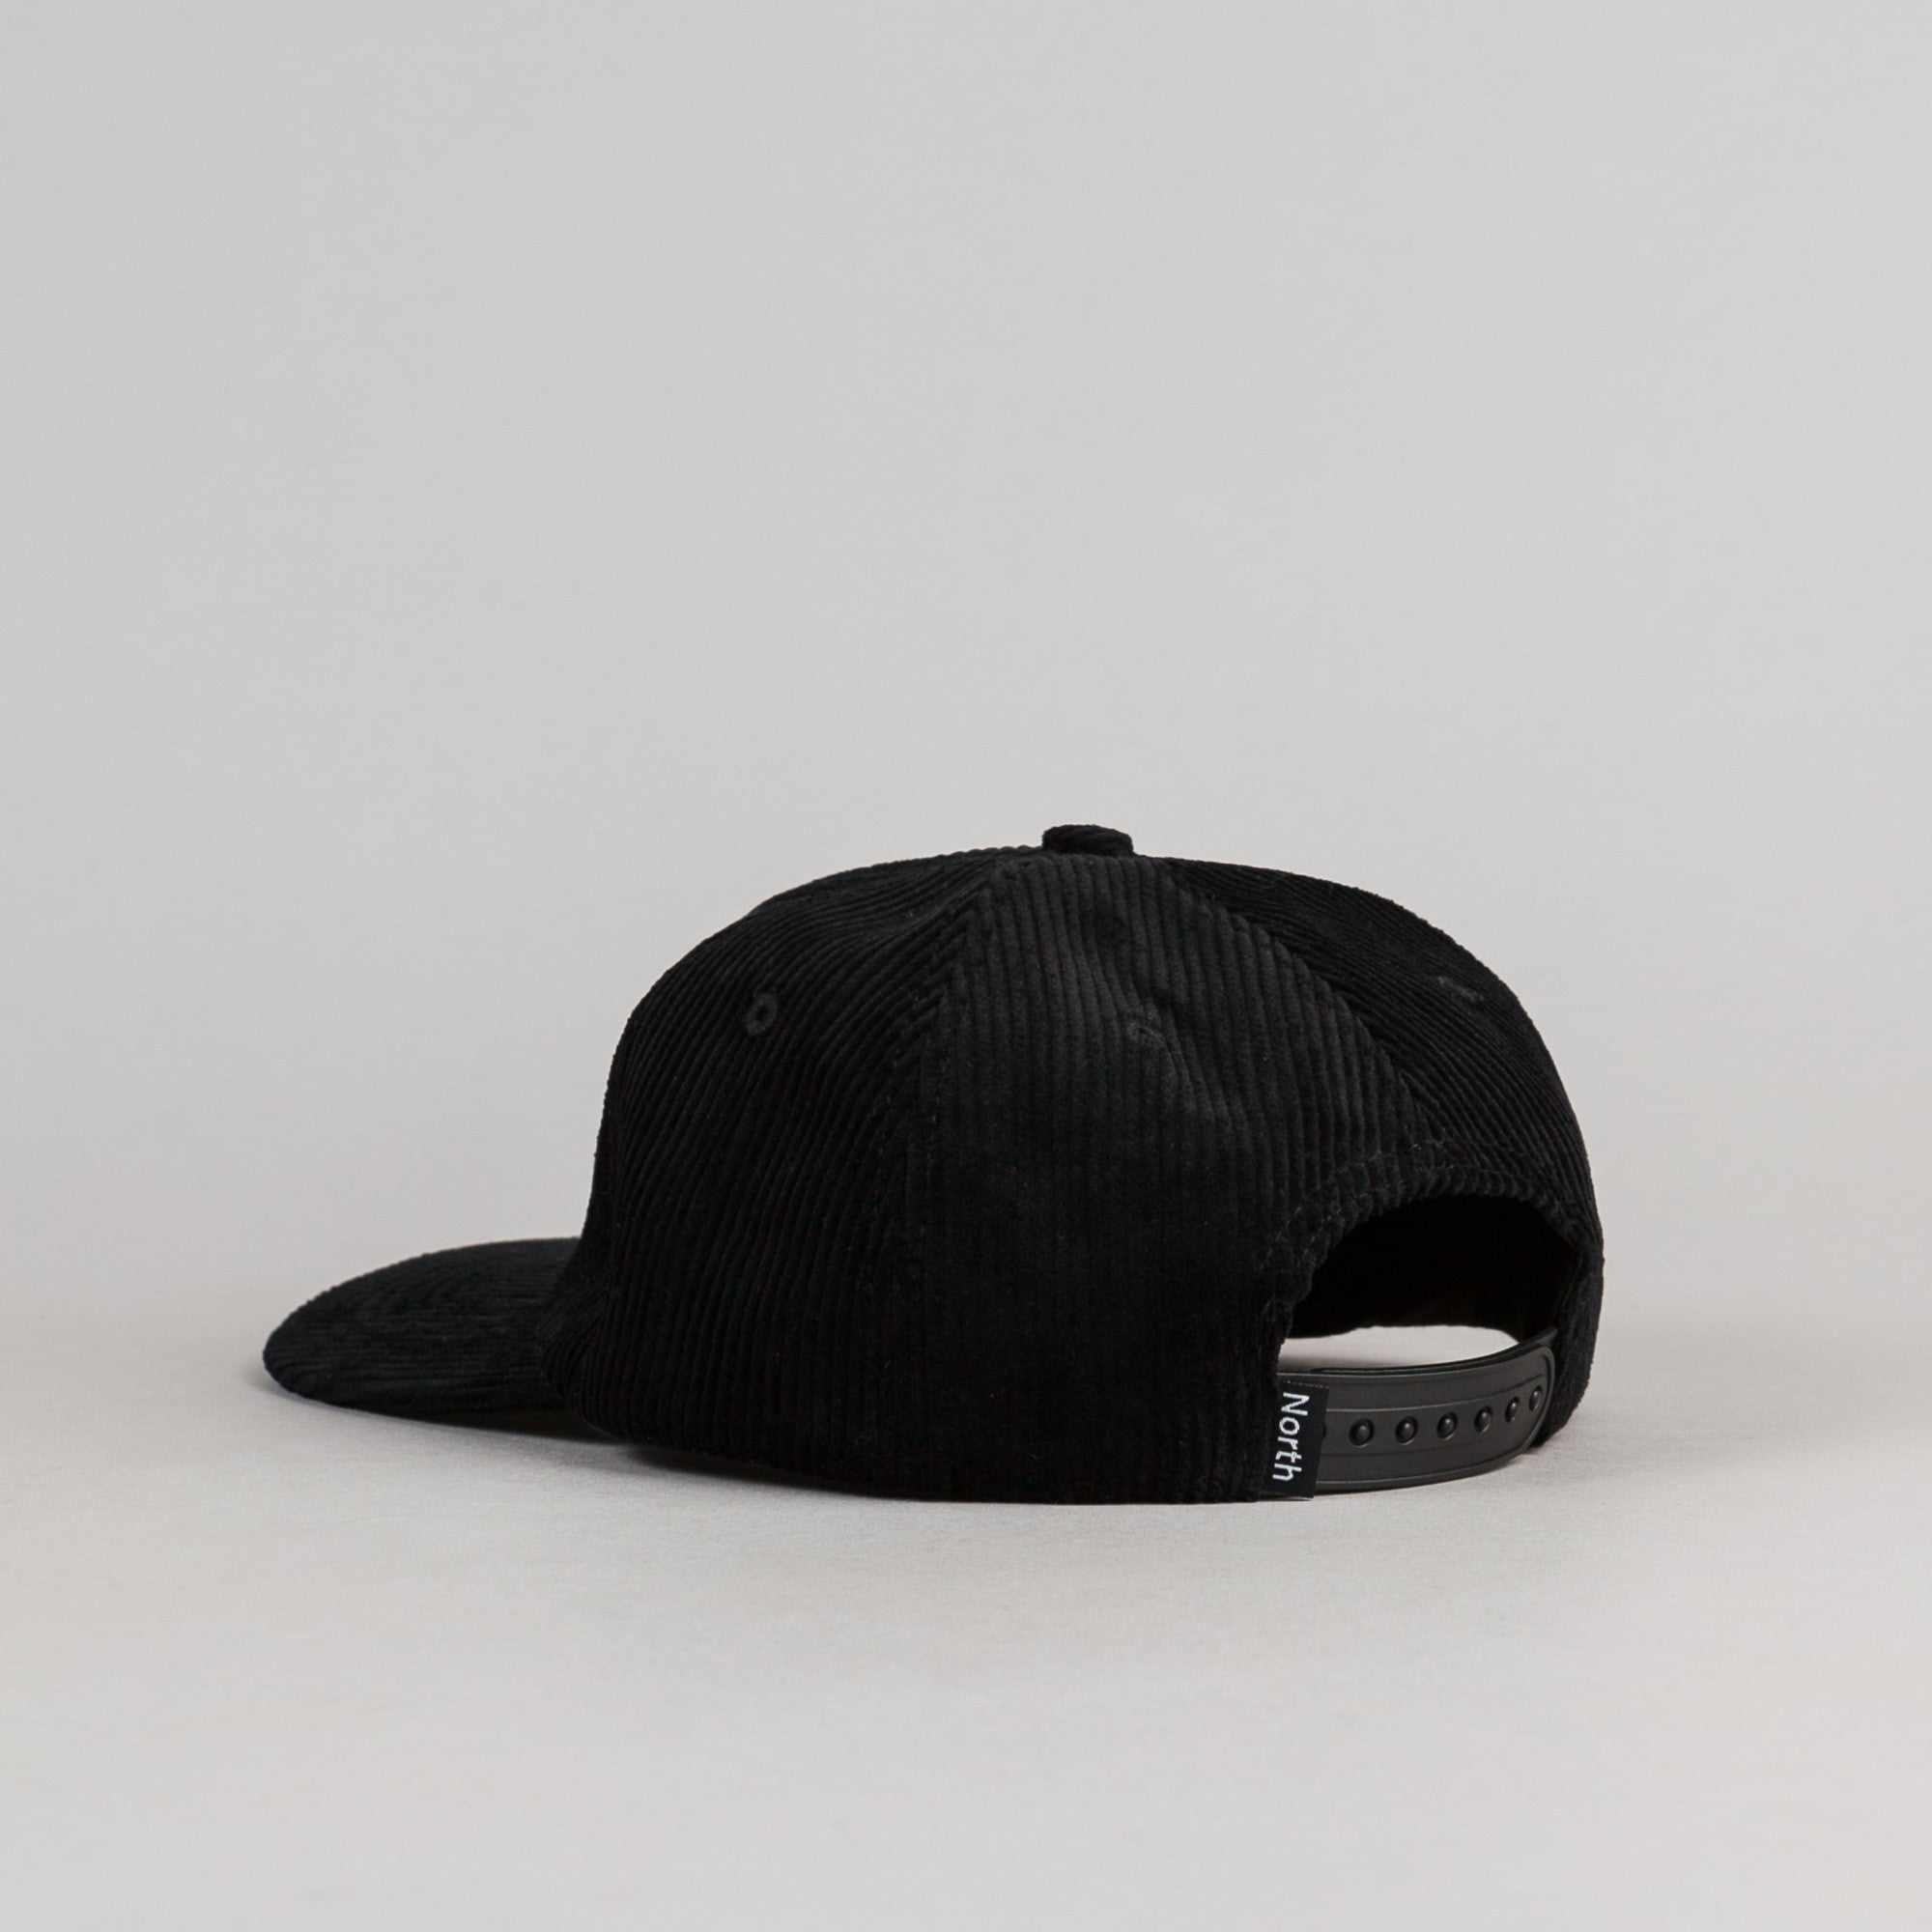 North Skateboard Magazine Moonwalker Cap - Black